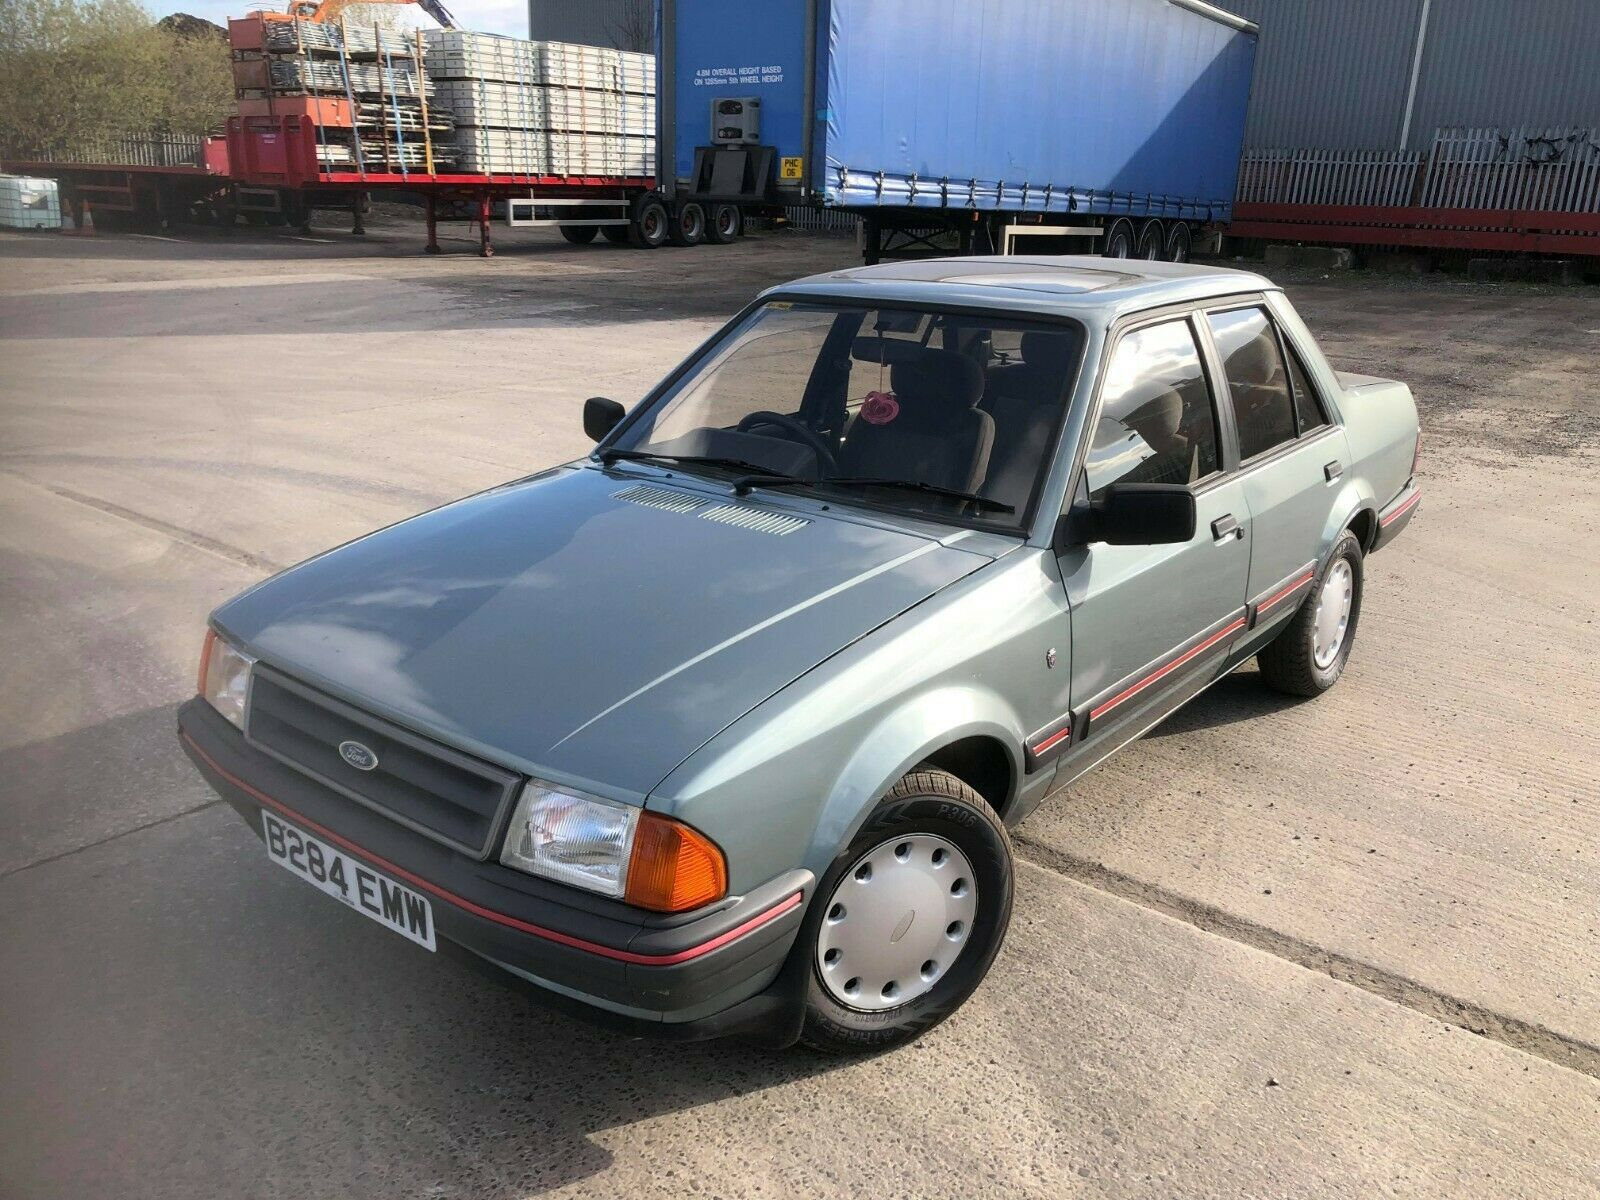 Ford Orion 1 6i Ghia Mk1 1985 Ford Orion Ford Classic Cars